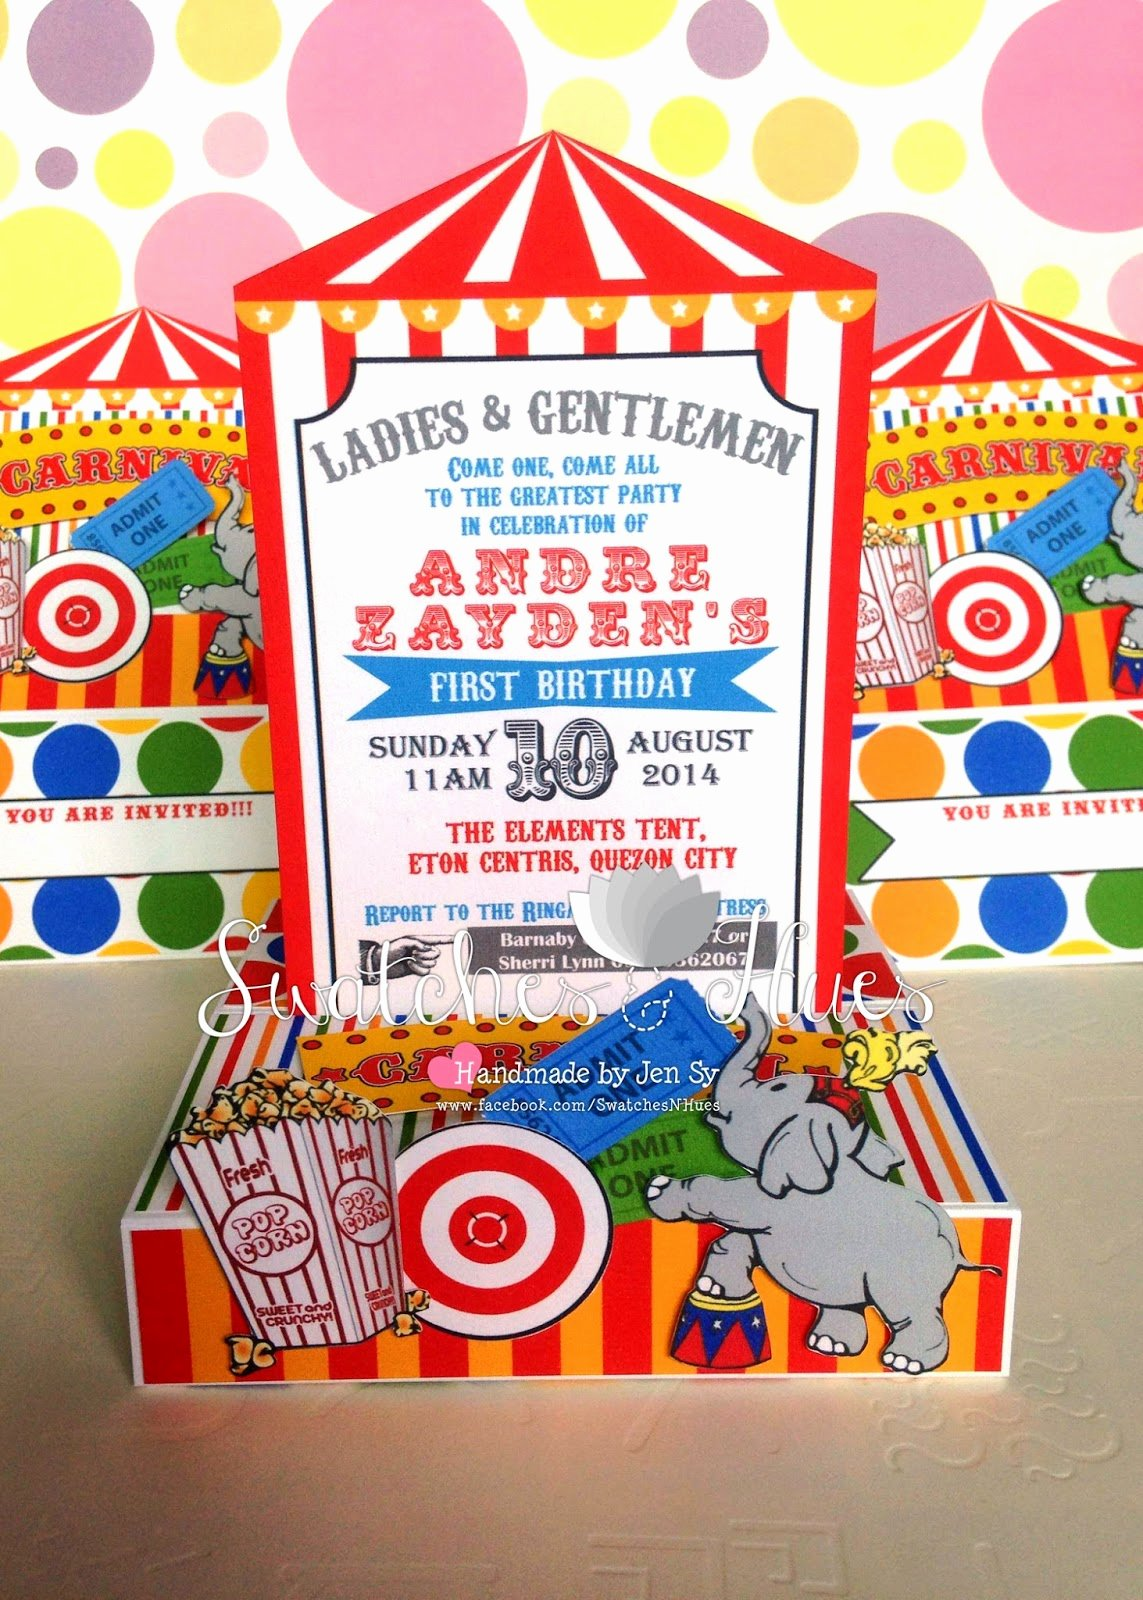 Carnival theme Party Invitations Inspirational Swatches & Hues Handmade with Tlc Circus and Carnival